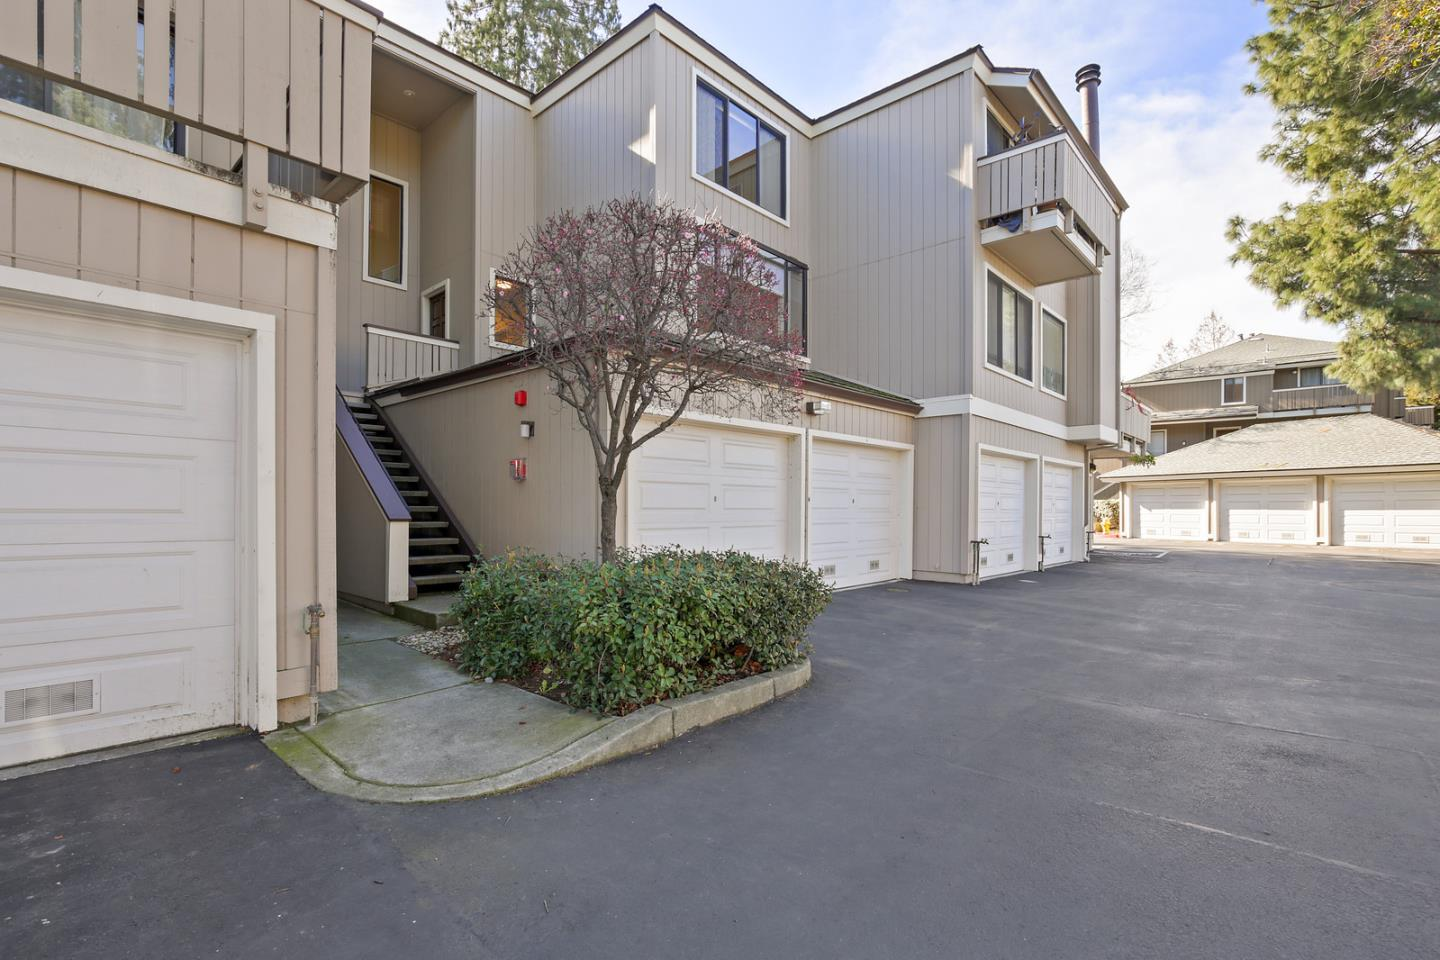 131 UNION AVE G, CAMPBELL, CA 95008